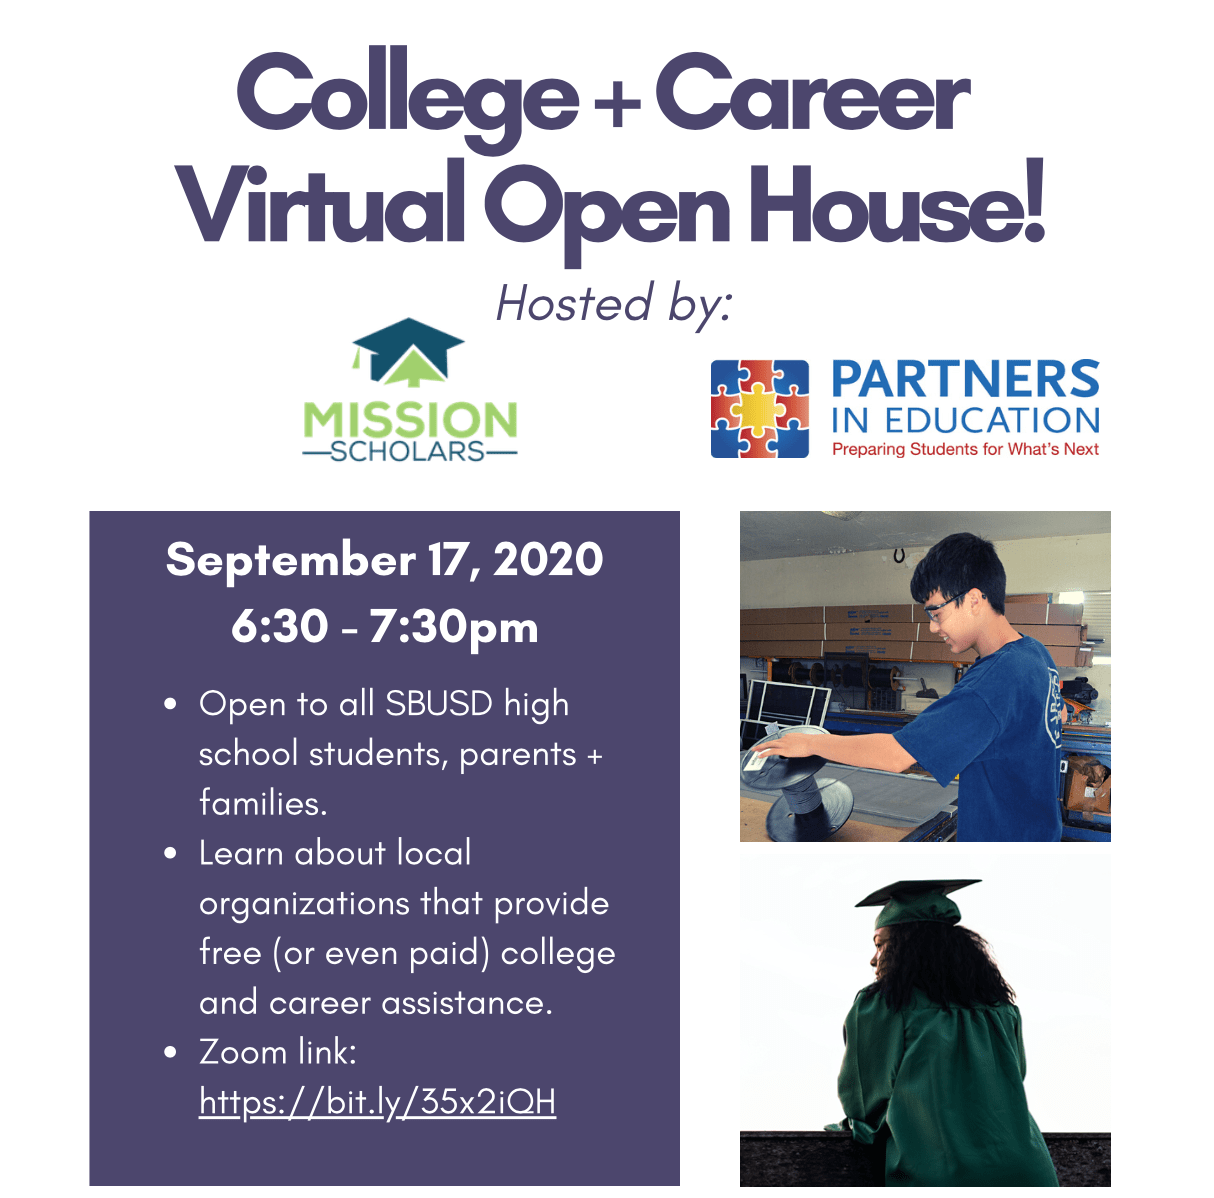 Mission Scholars College + Career Virtual Open House